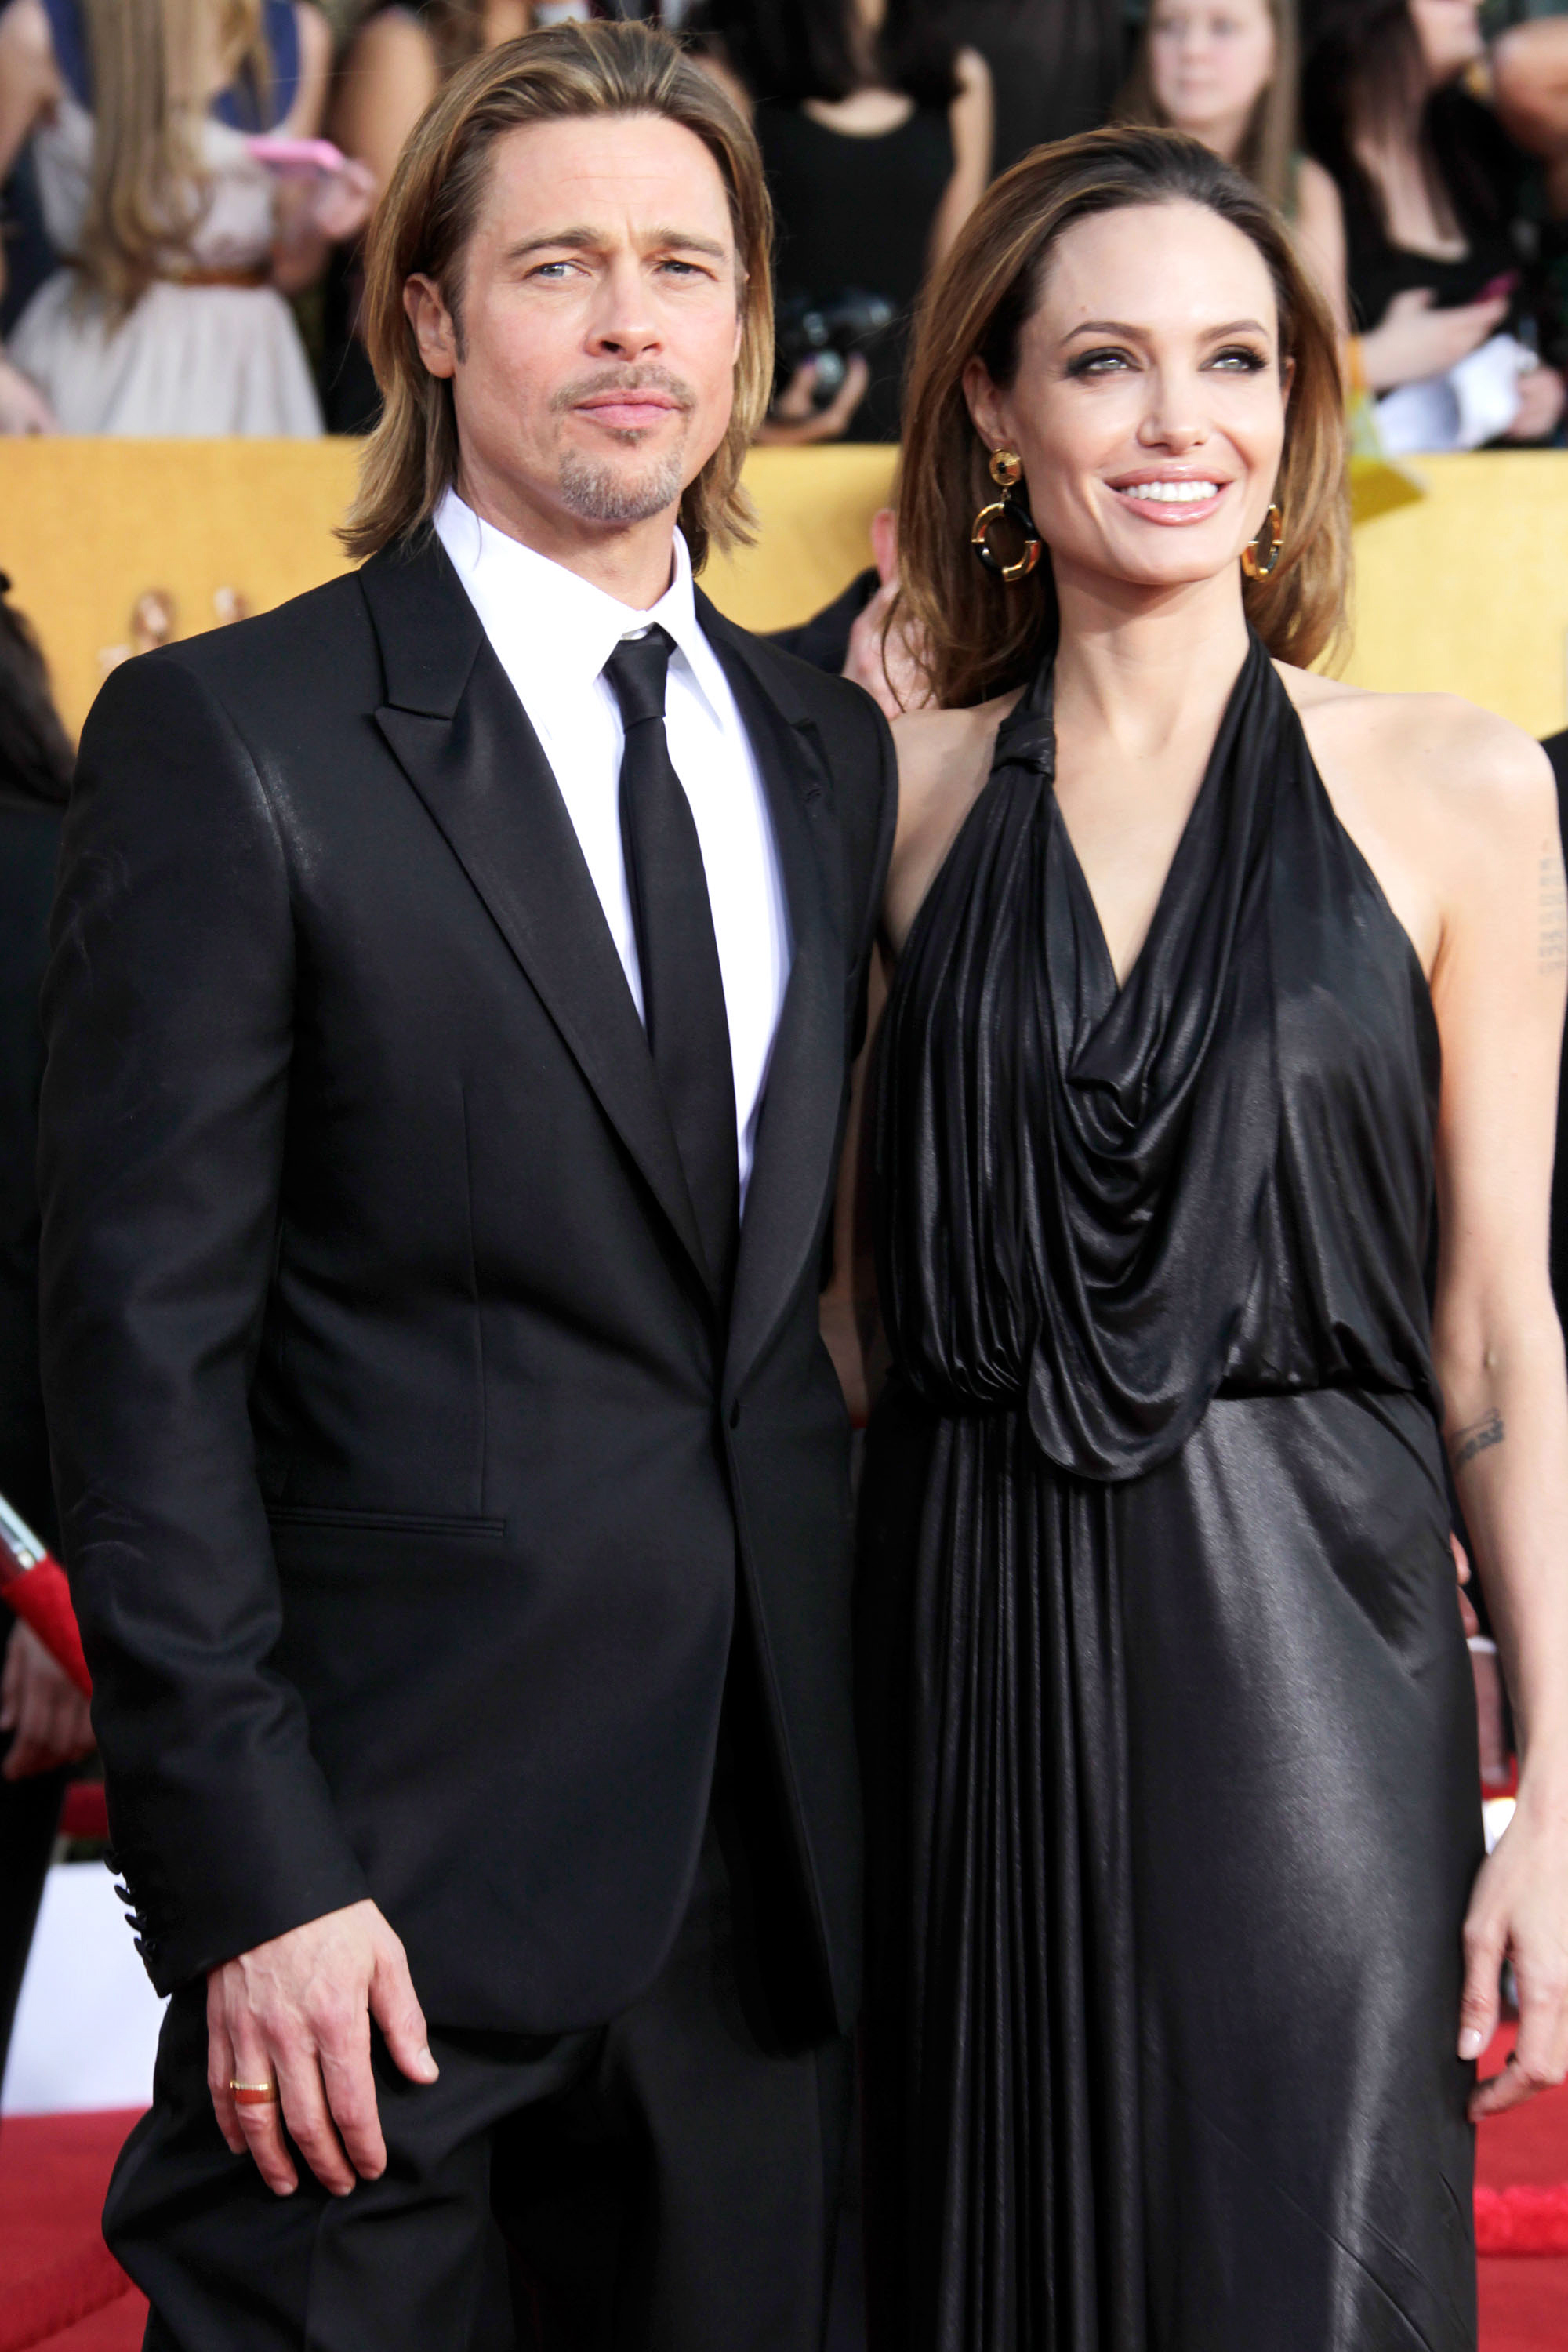 Brad Pitt and Angelina Jolie arrive at the 18th Annual Screen Actors Guild Awards on Jan. 29, 2012 in Los Angeles.